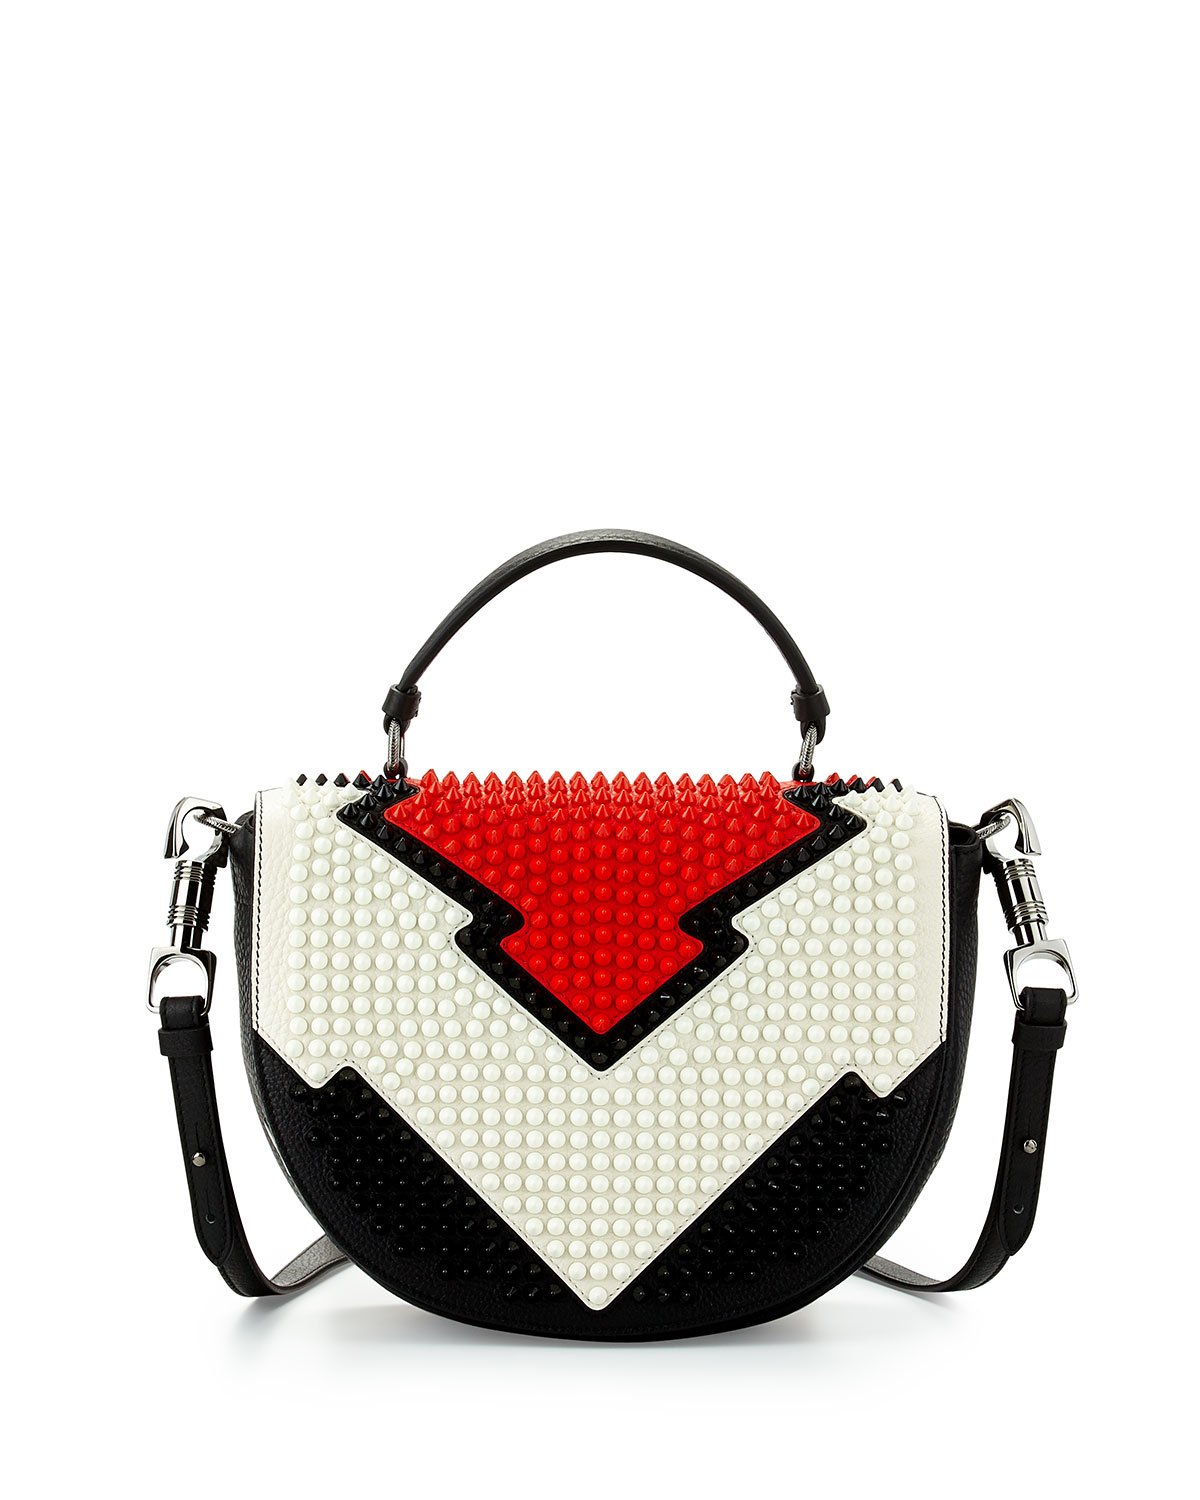 f2560284c81 Panettone Spiked Messenger Bag, Red/White/Black